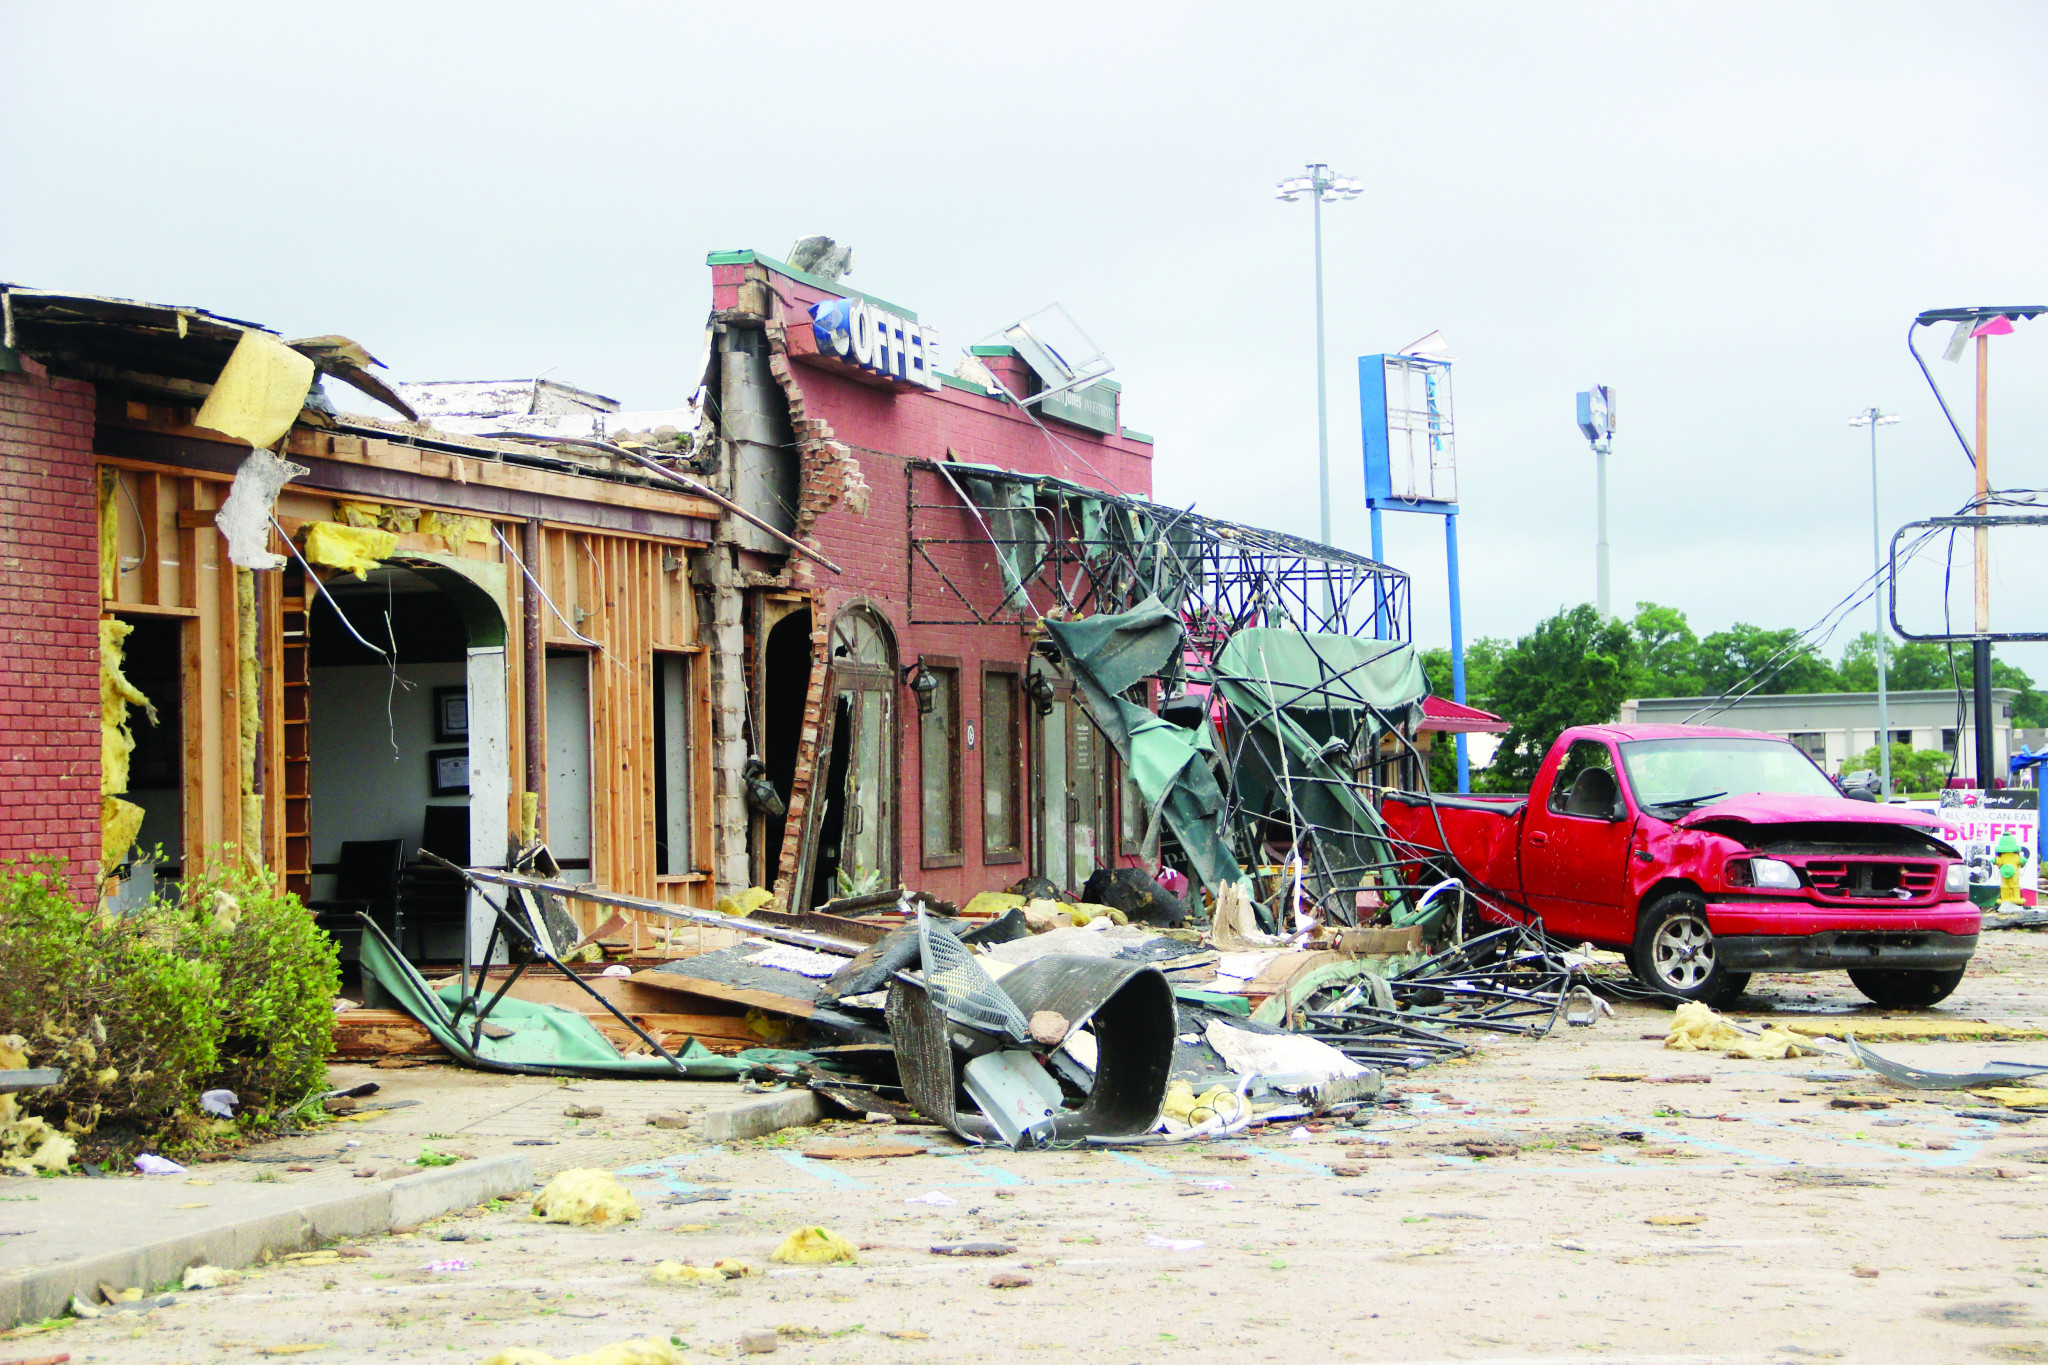 "<span style=""font-size:12pt""><span style=""font-family:&quot;Times New Roman&quot;"">The destroyed Courtesy Loans, Parish Press and Edward Jones businesses the morning after the tornado.</span></span>"